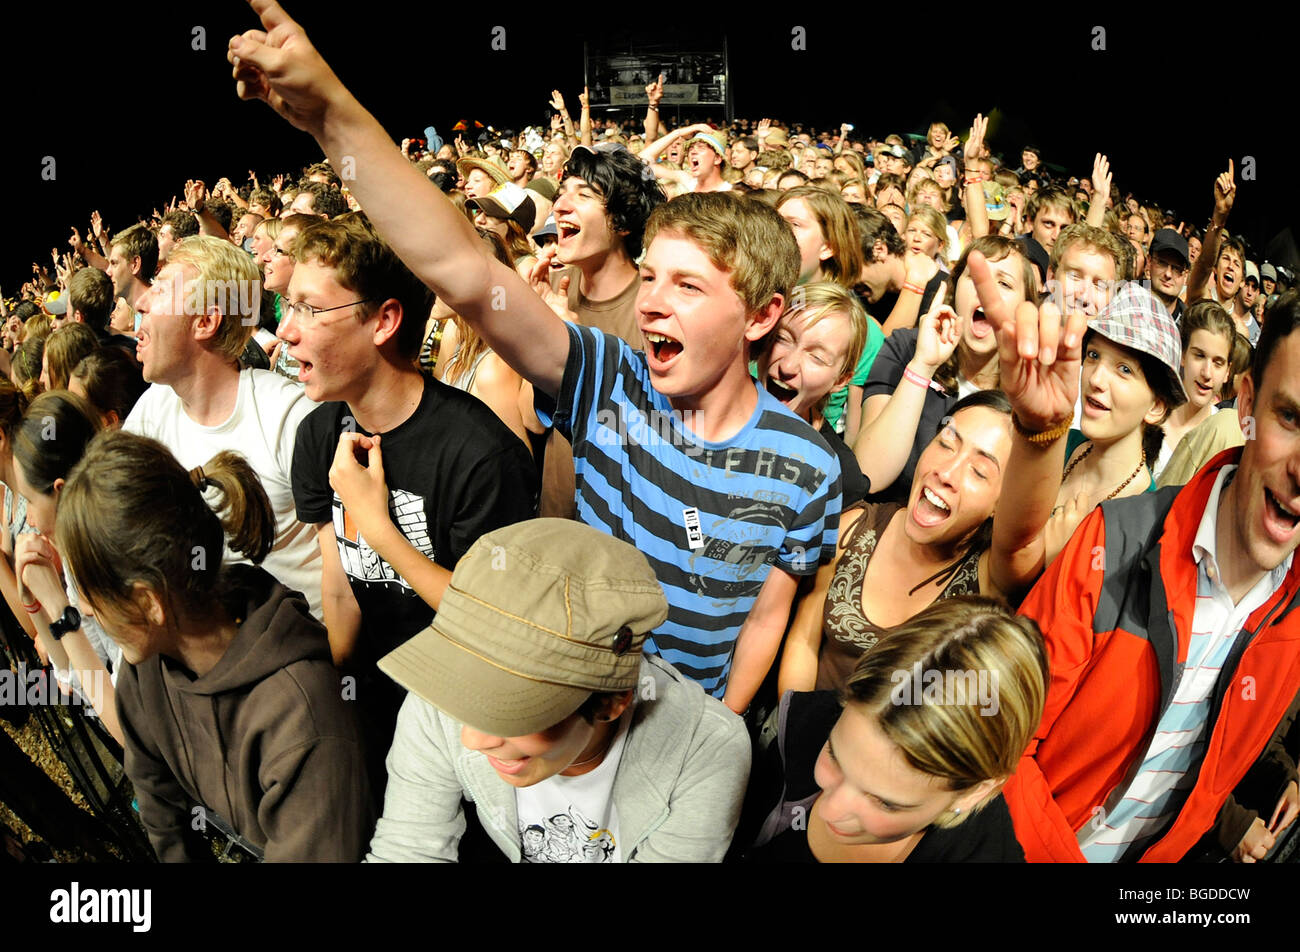 Crowd at an open air concert, Sonnenrot festival Geretsried, Bavaria, Germany, Europe - Stock Image